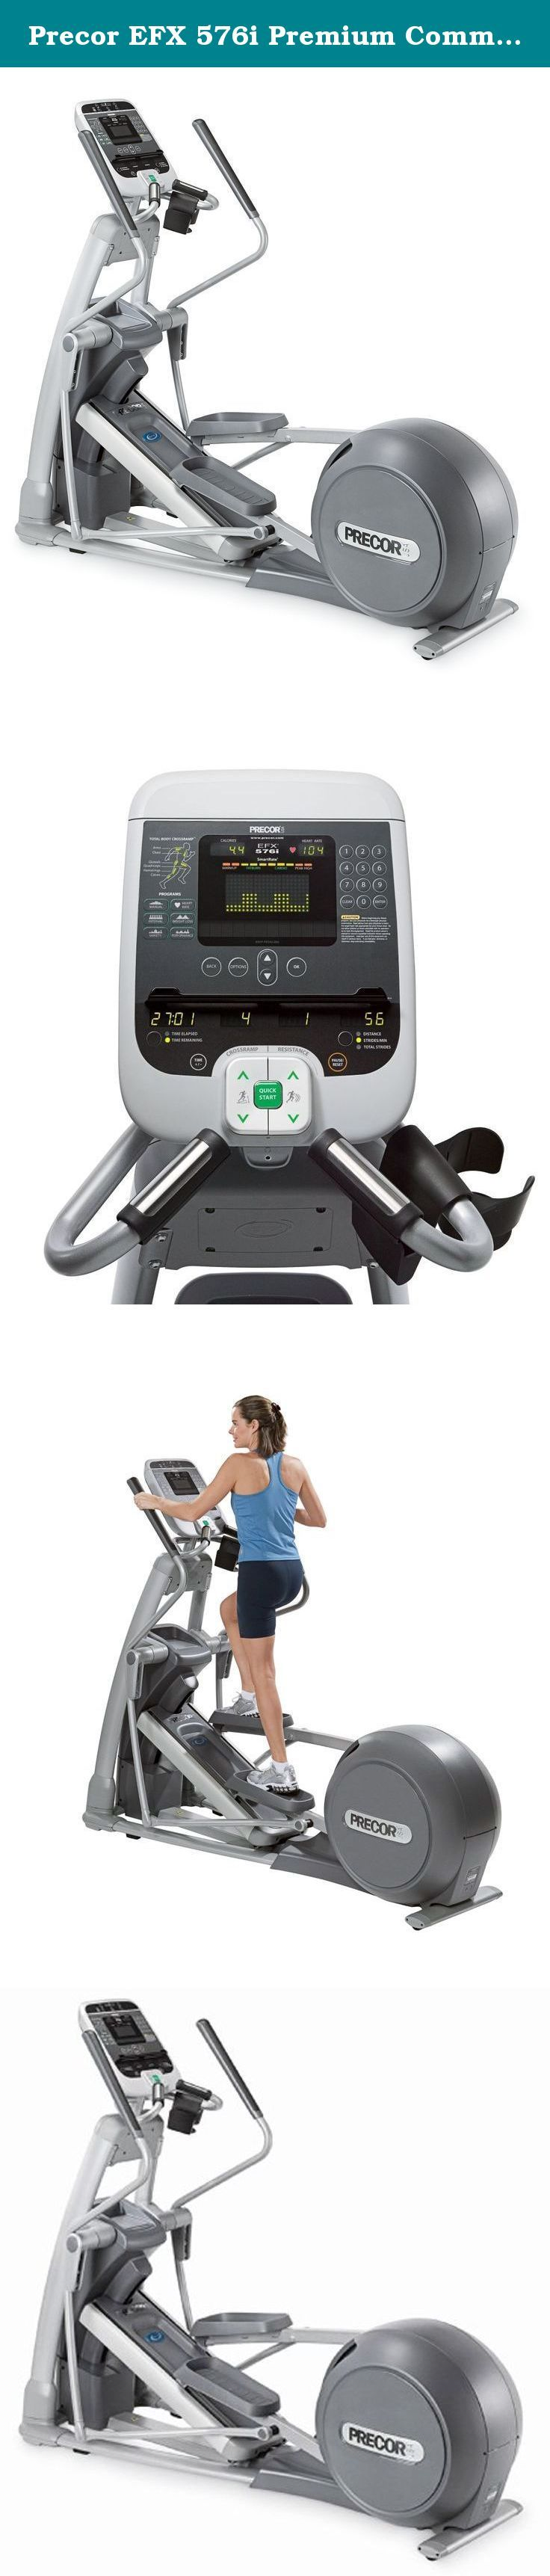 Precor EFX 576i Premium Commercial Series Elliptical Fitness Crosstrainer (2009 Model). You are looking at the Precor EFX 576i elliptical. This elliptical features the moving arms of a cross-trainer with a cross-ramp adjustable from 13 to 40 degrees and 14 programs. It is a super efficient, low impact workout that is easy on your joints and helps you burn calories faster. It features a built-in heart rate monitor into the handles and the soft touch display, which works at the graze of a...